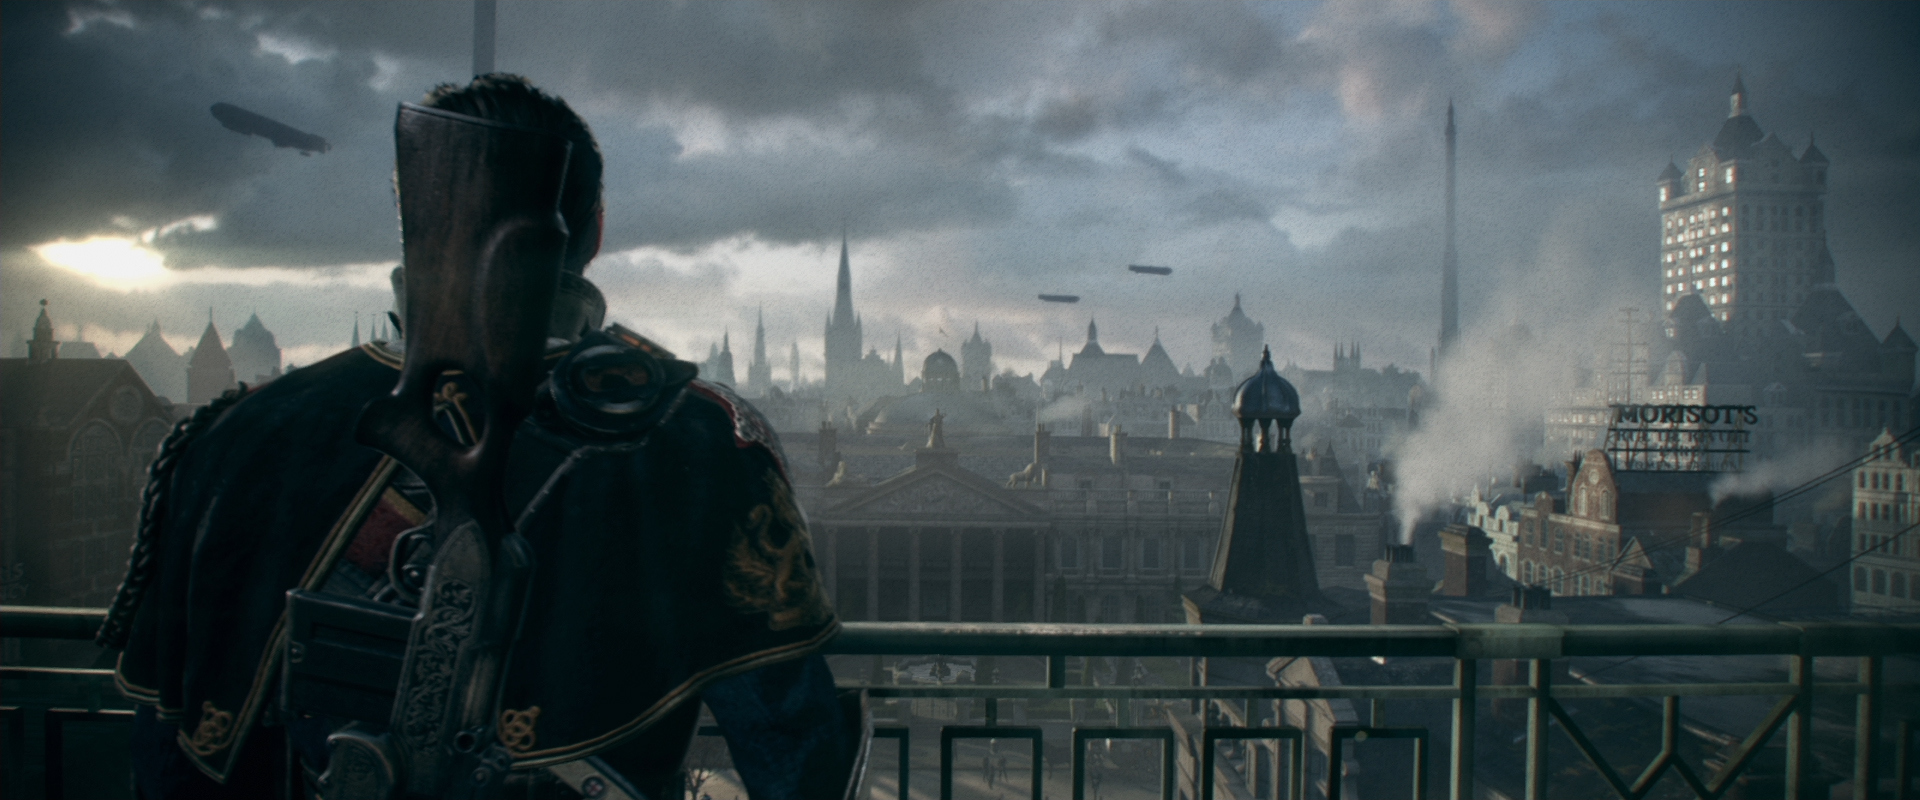 The Order: 1886 Review: PS4's First True Exclusive Killer App, Truly An Amazing Story ...